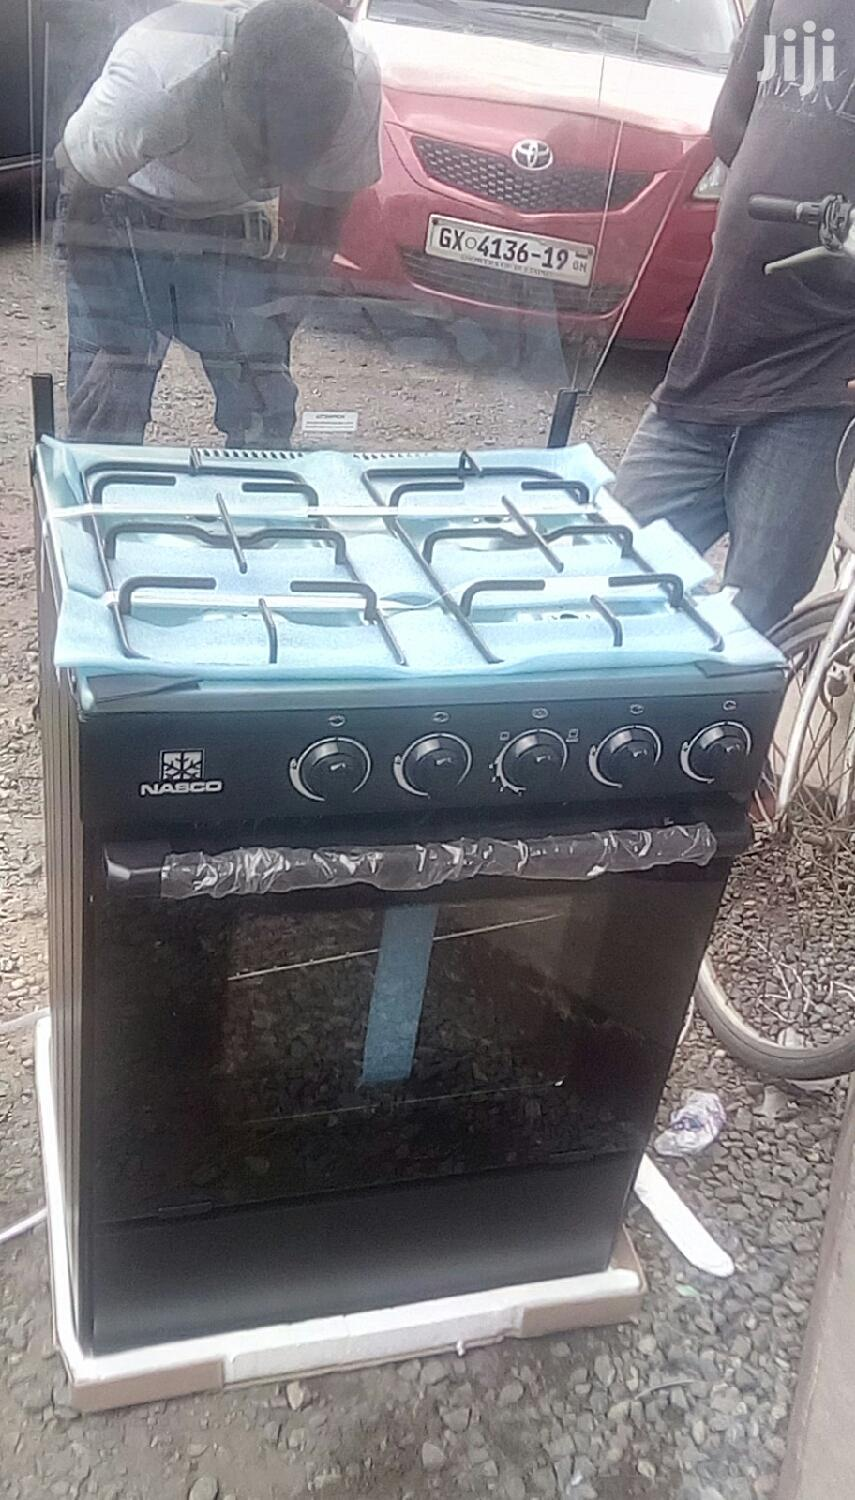 Nasco Oven And Grill 4 Burner Gas Cooker